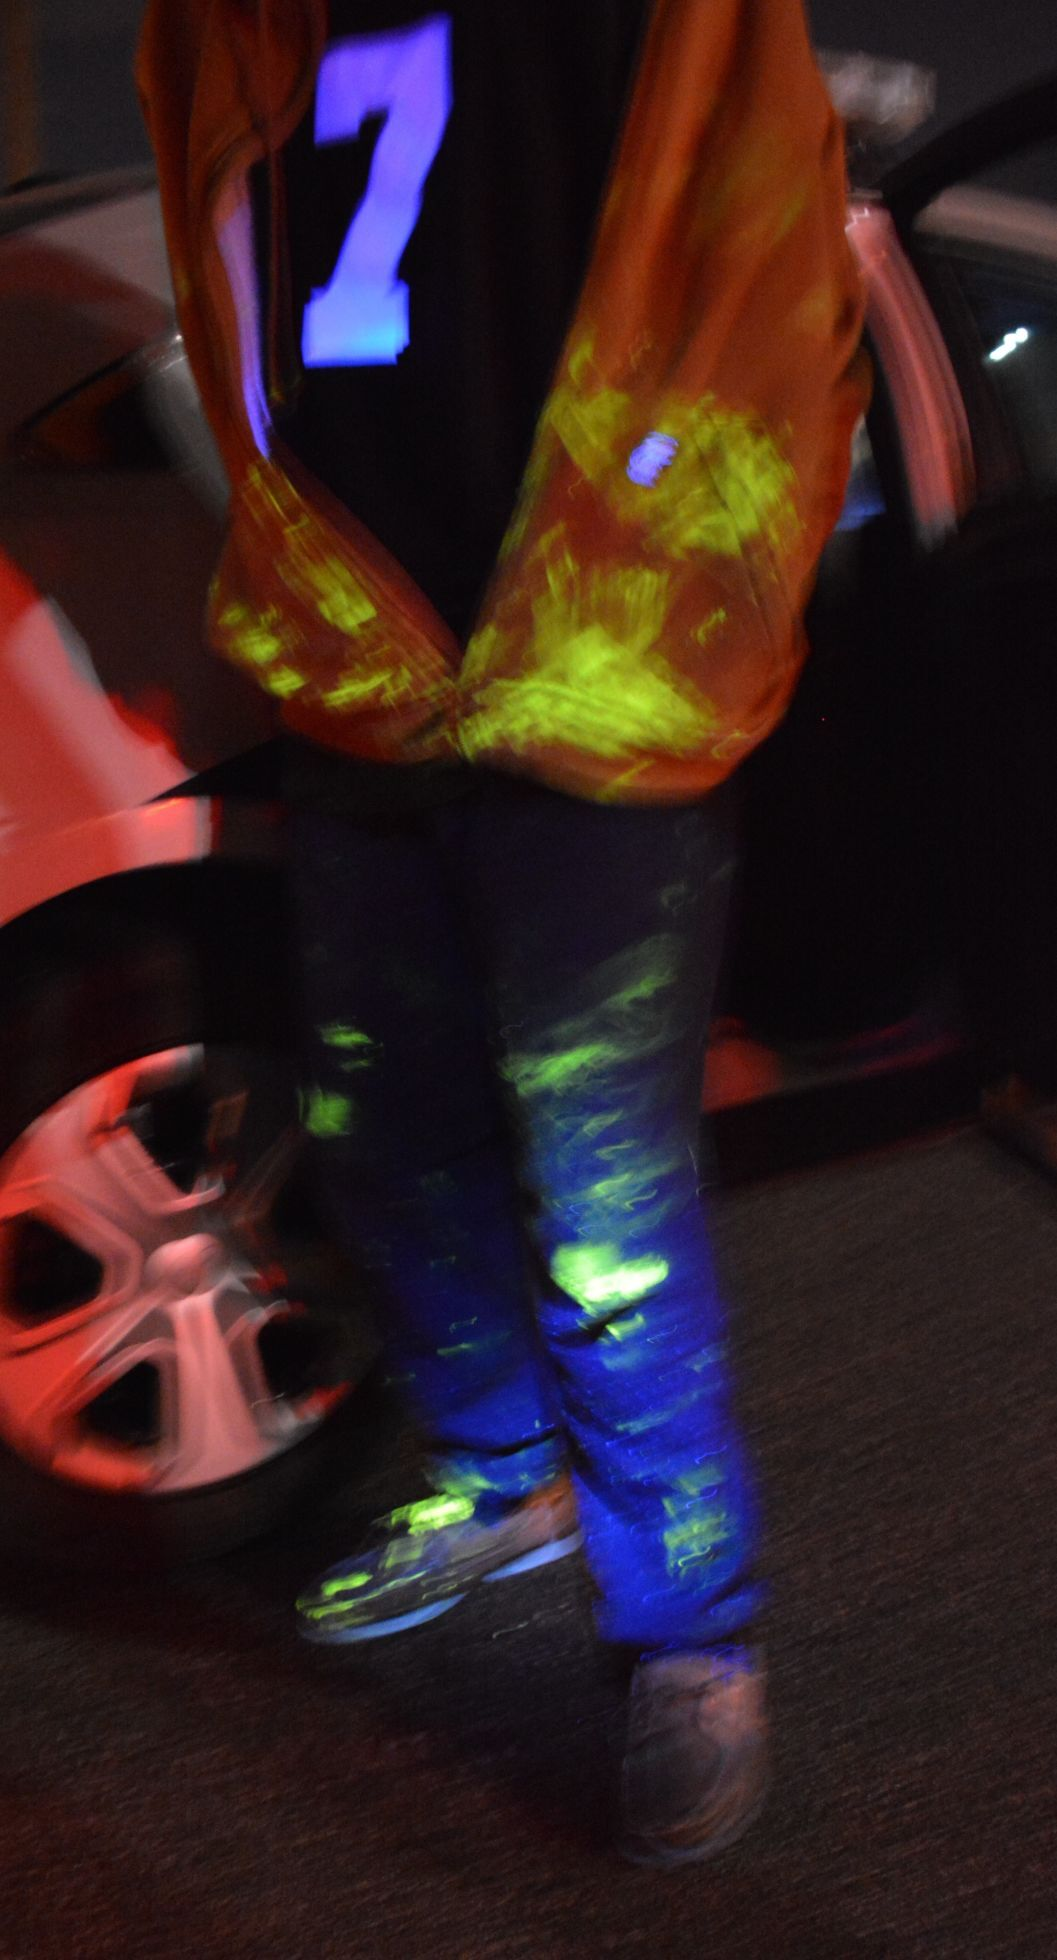 SmartWater suspect with luminescent markings on his clothing